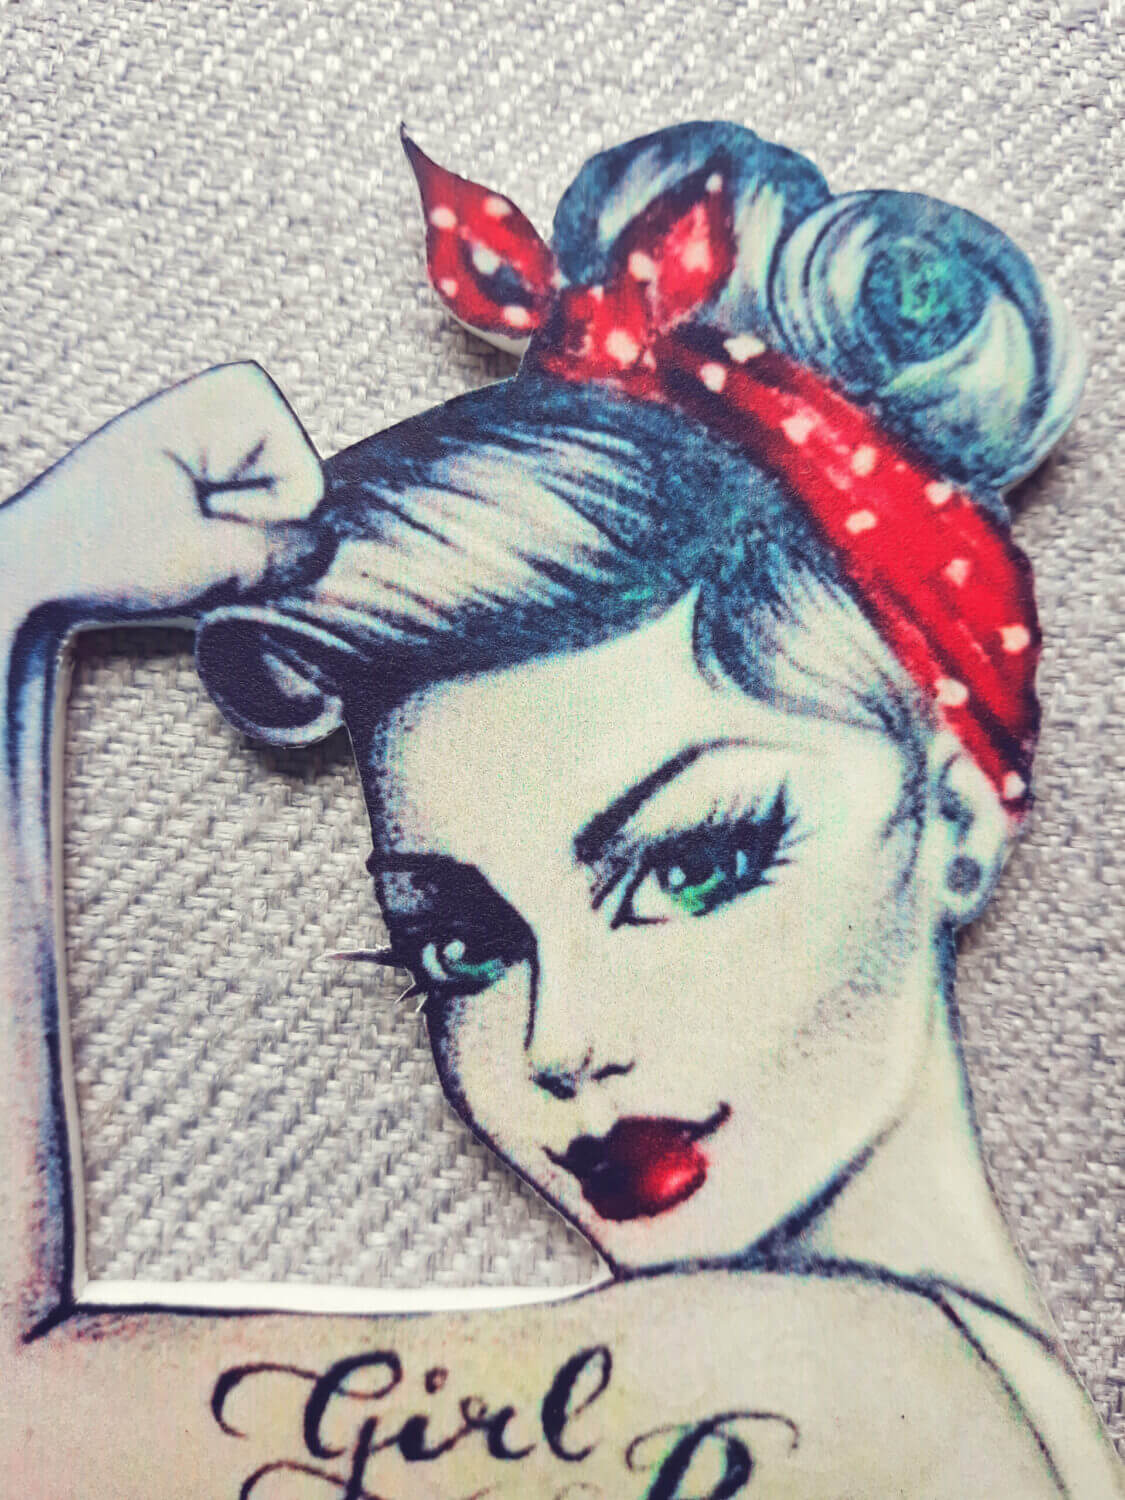 wydruk na bok tortu pin up girl